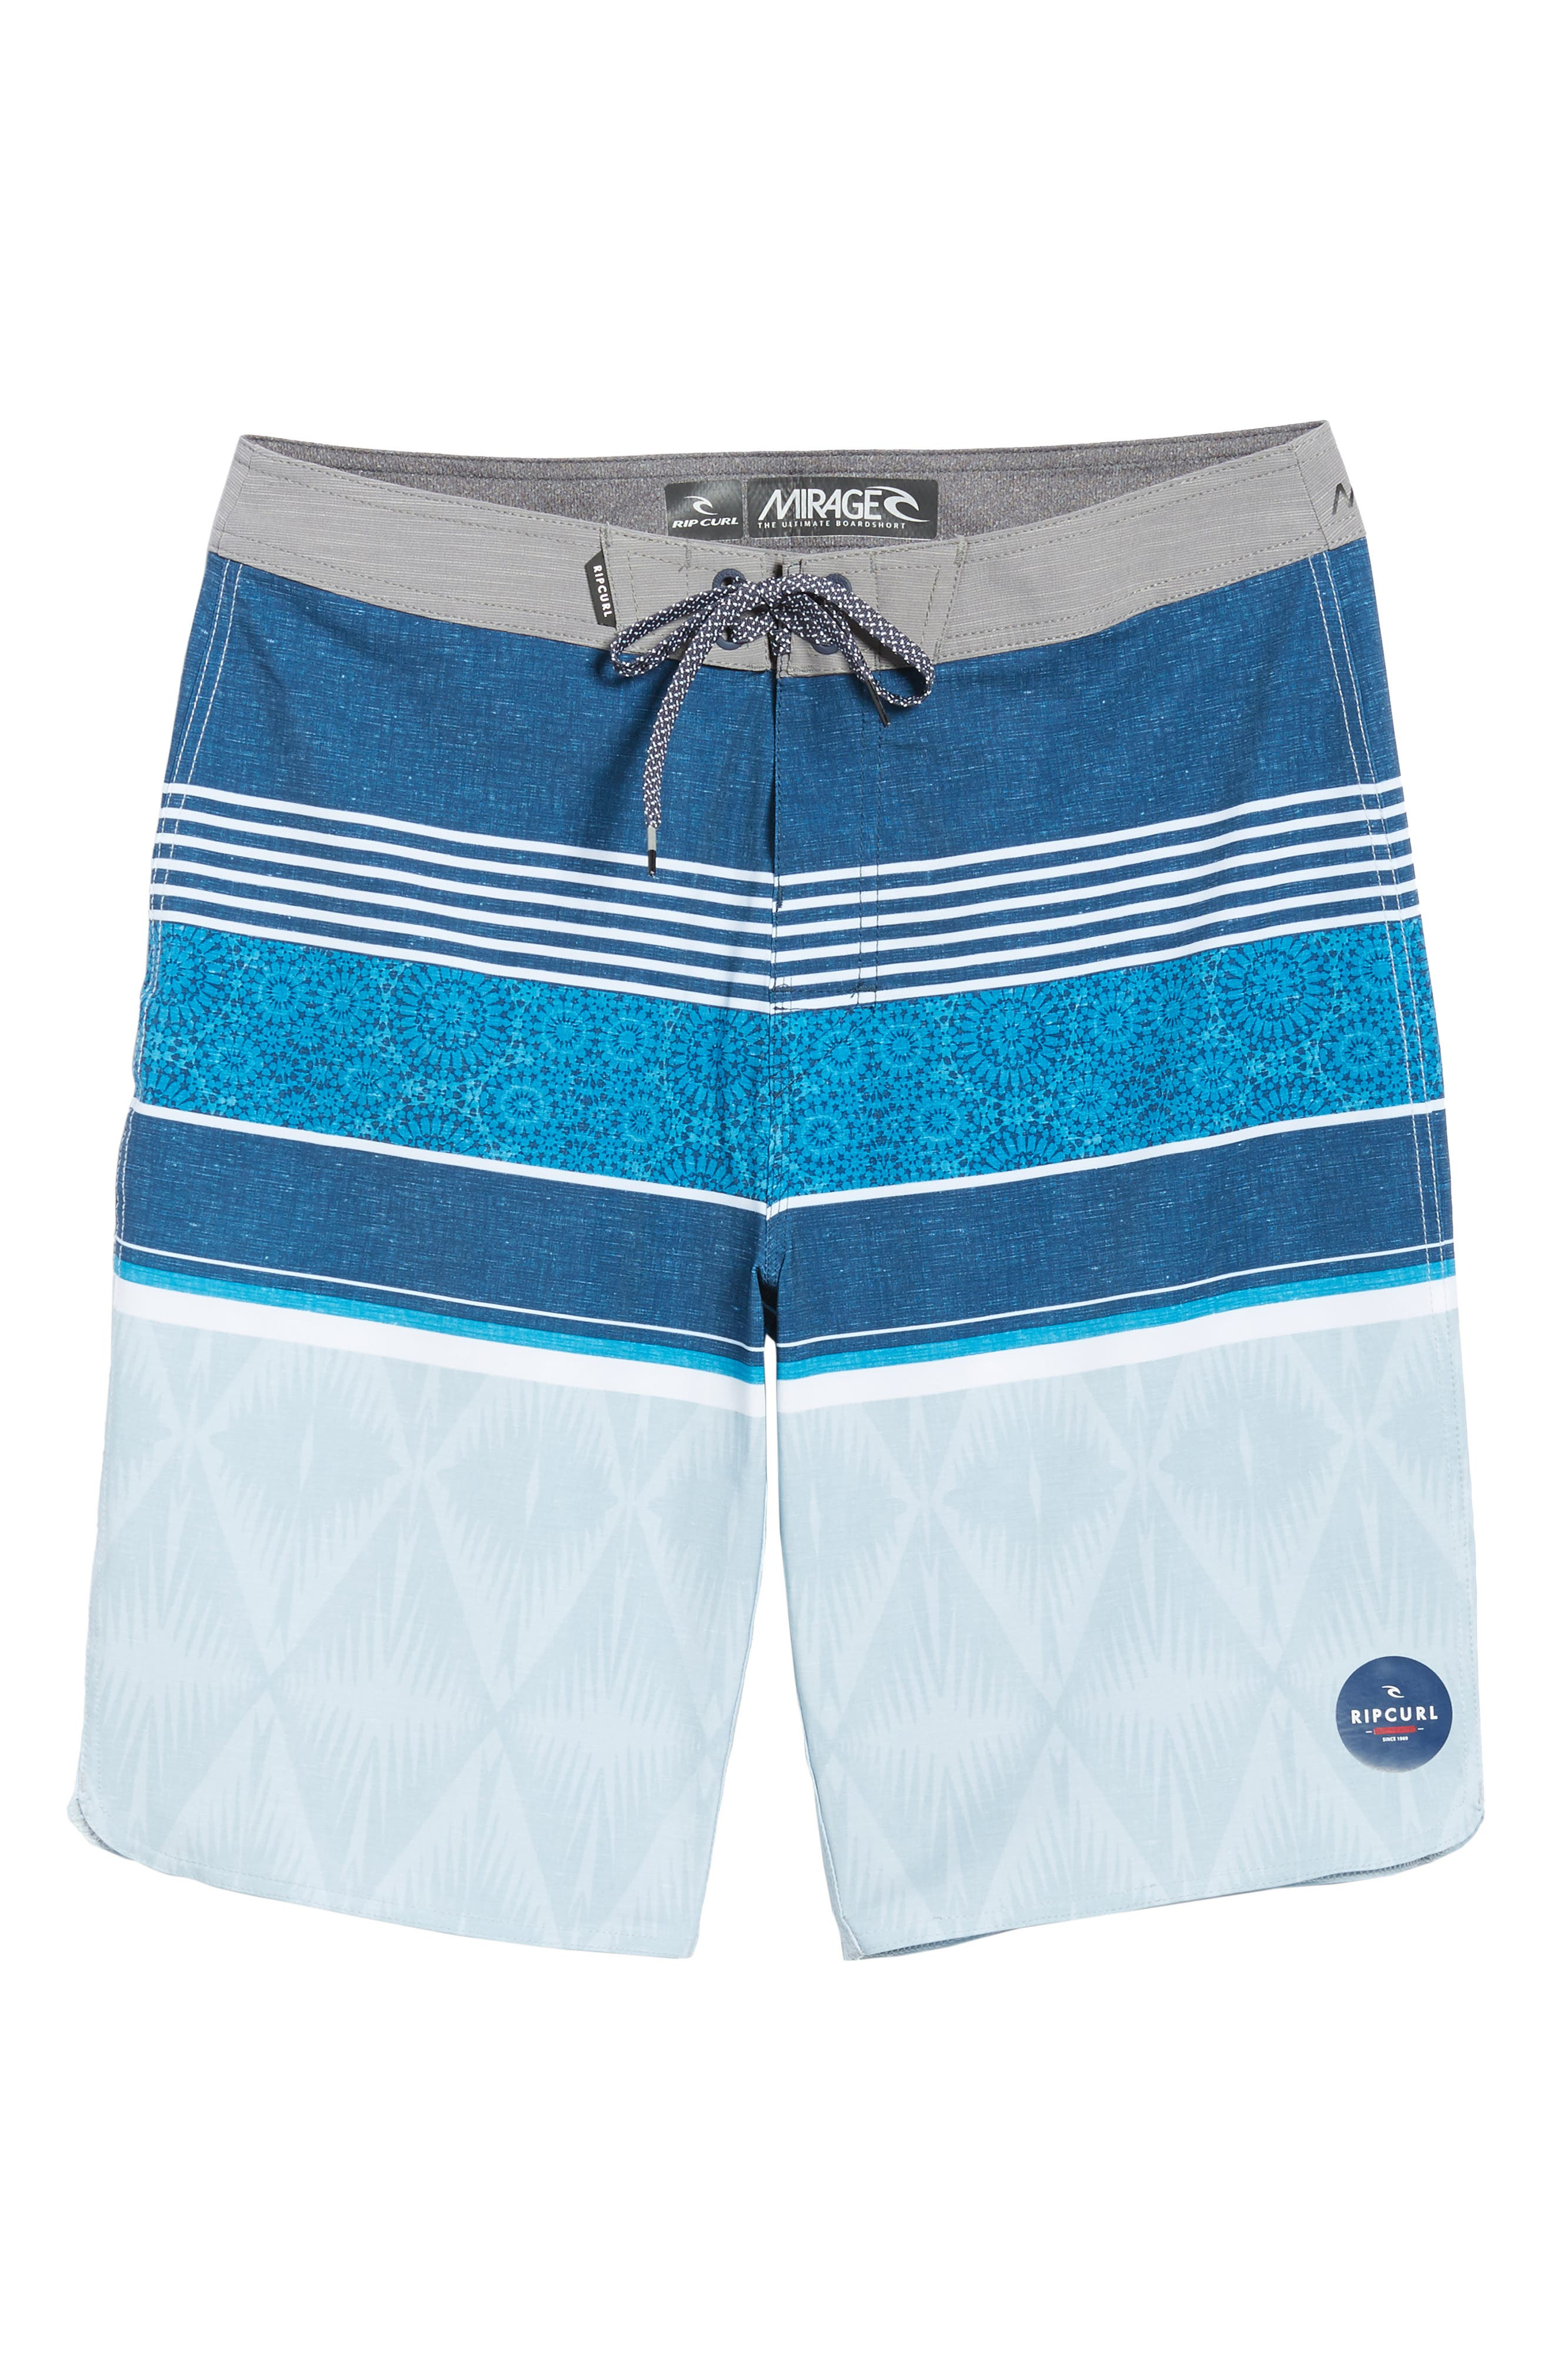 Mirage Sessions Board Shorts,                             Alternate thumbnail 6, color,                             400